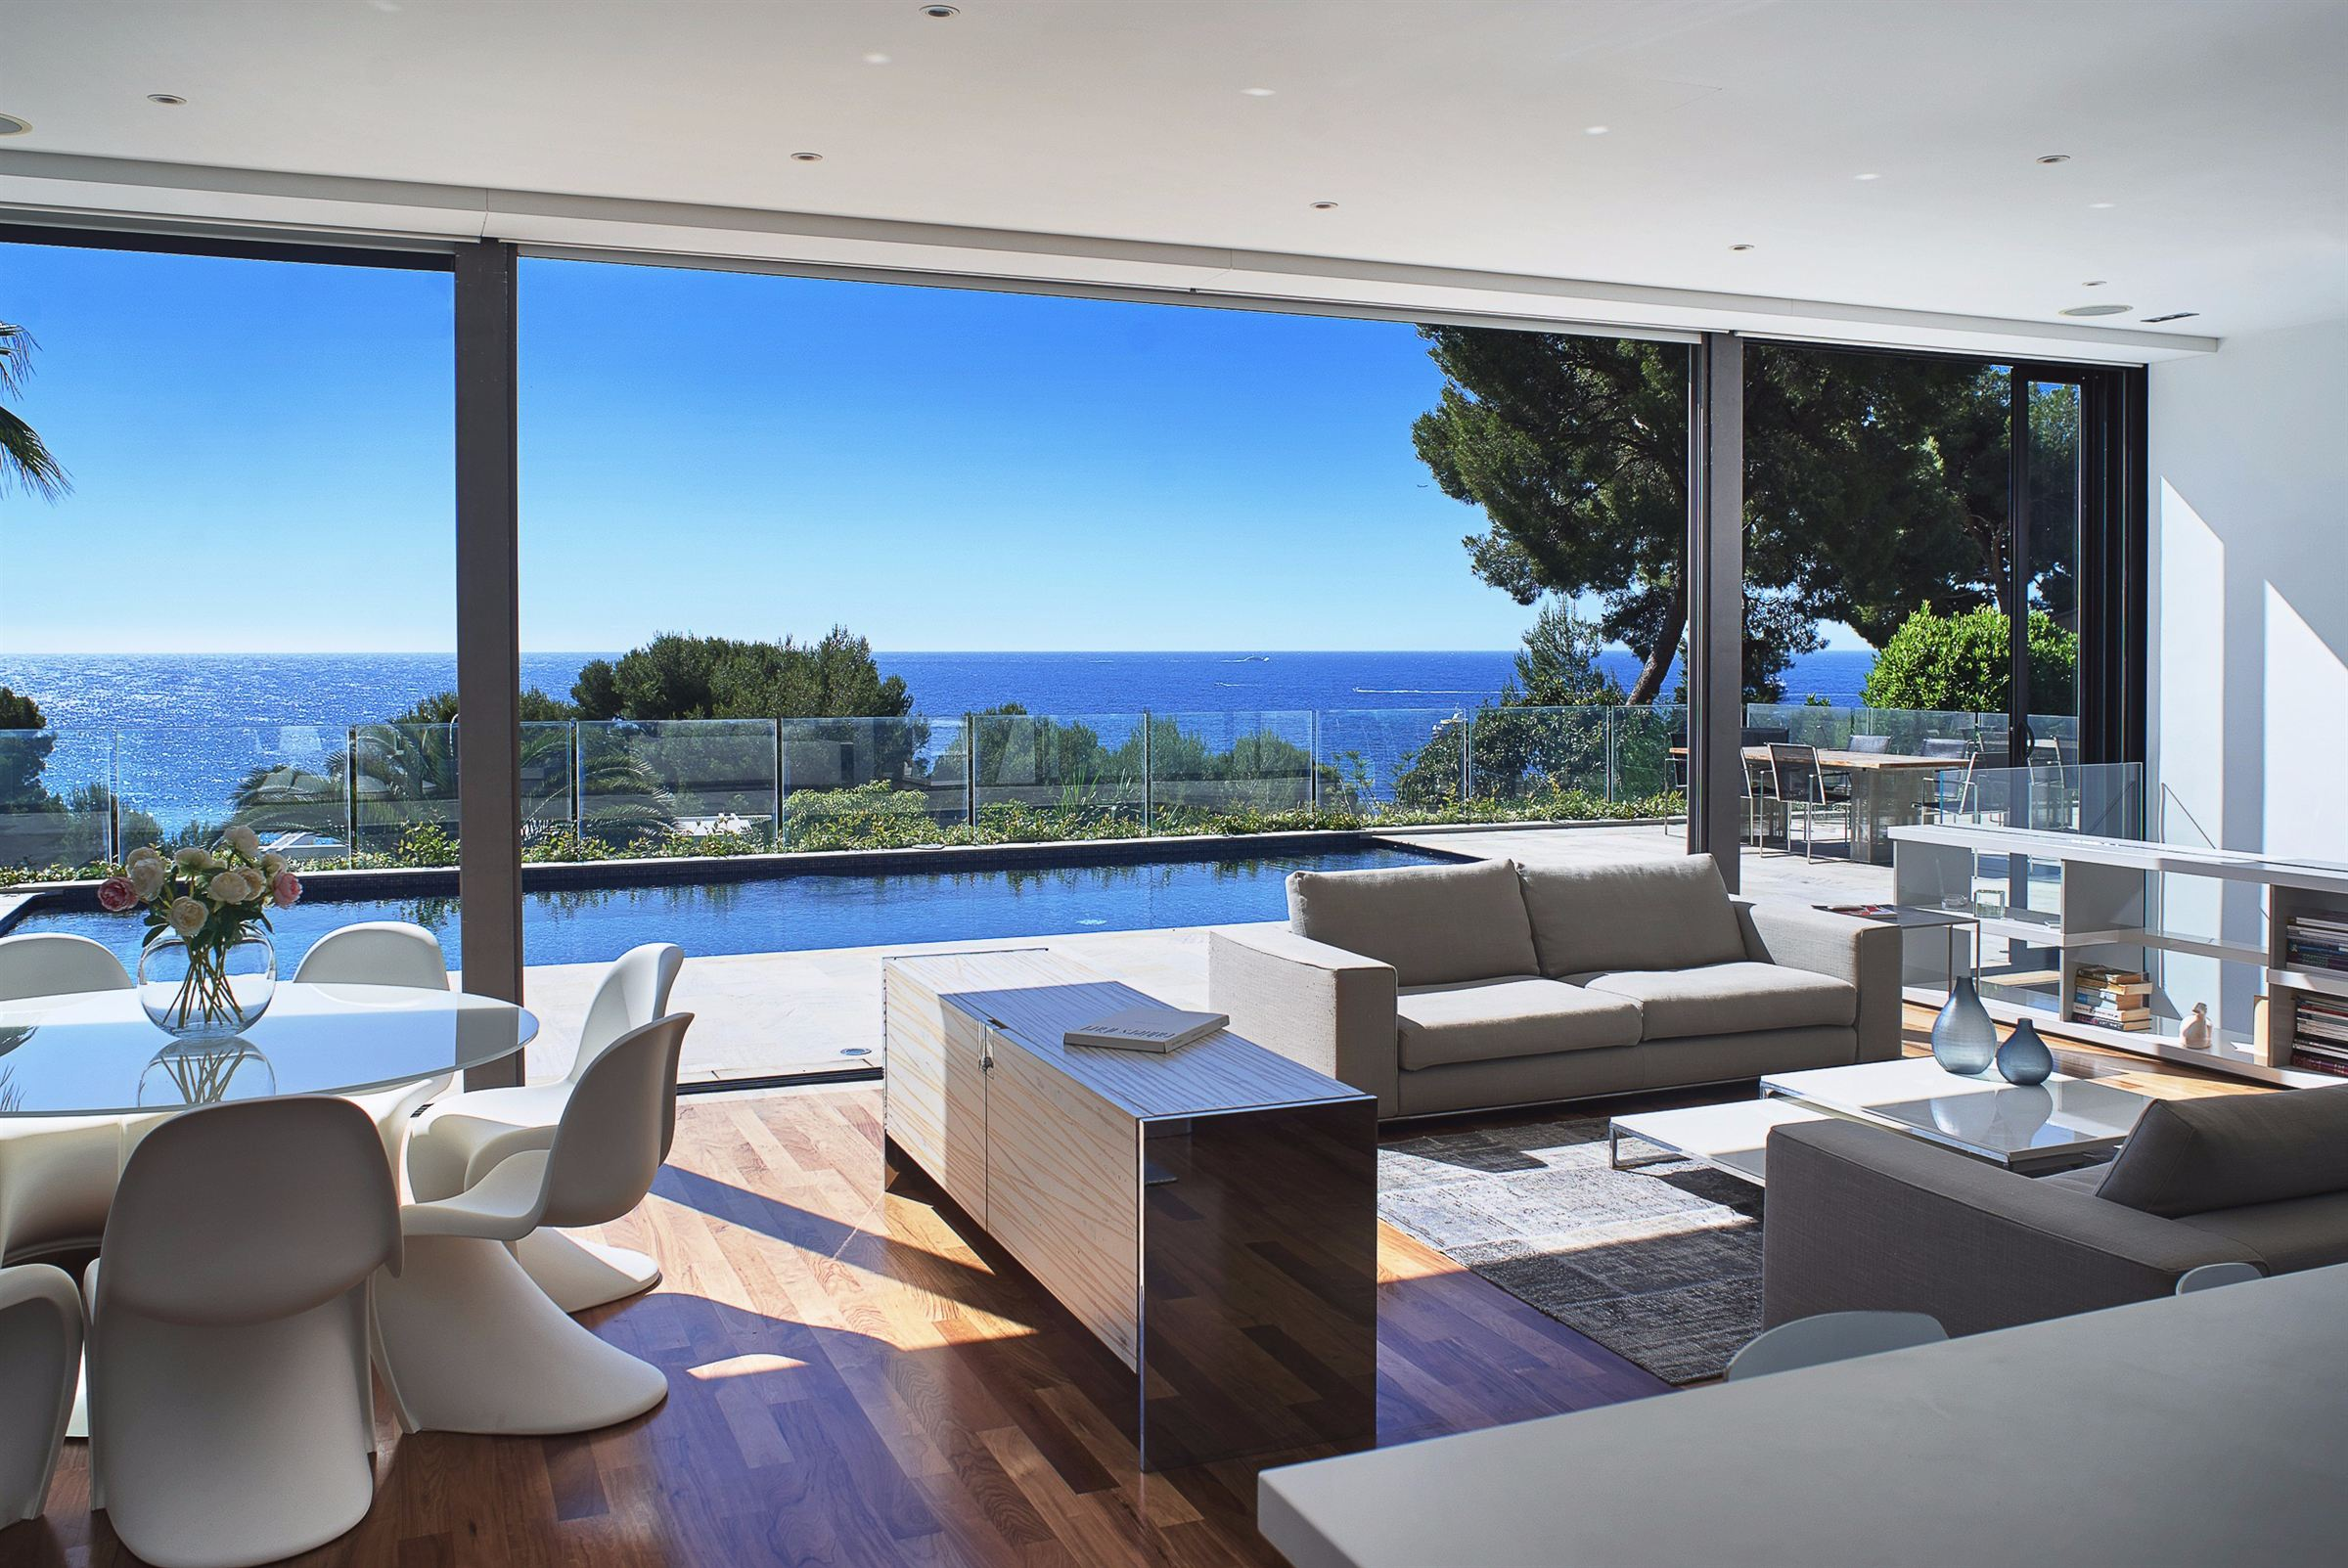 Villa per Vendita alle ore Contemporary Villa for sale in Eze bord de Mer with fantastic sea views Eze, Provenza-Alpi-Costa Azzurra, 06360 Francia